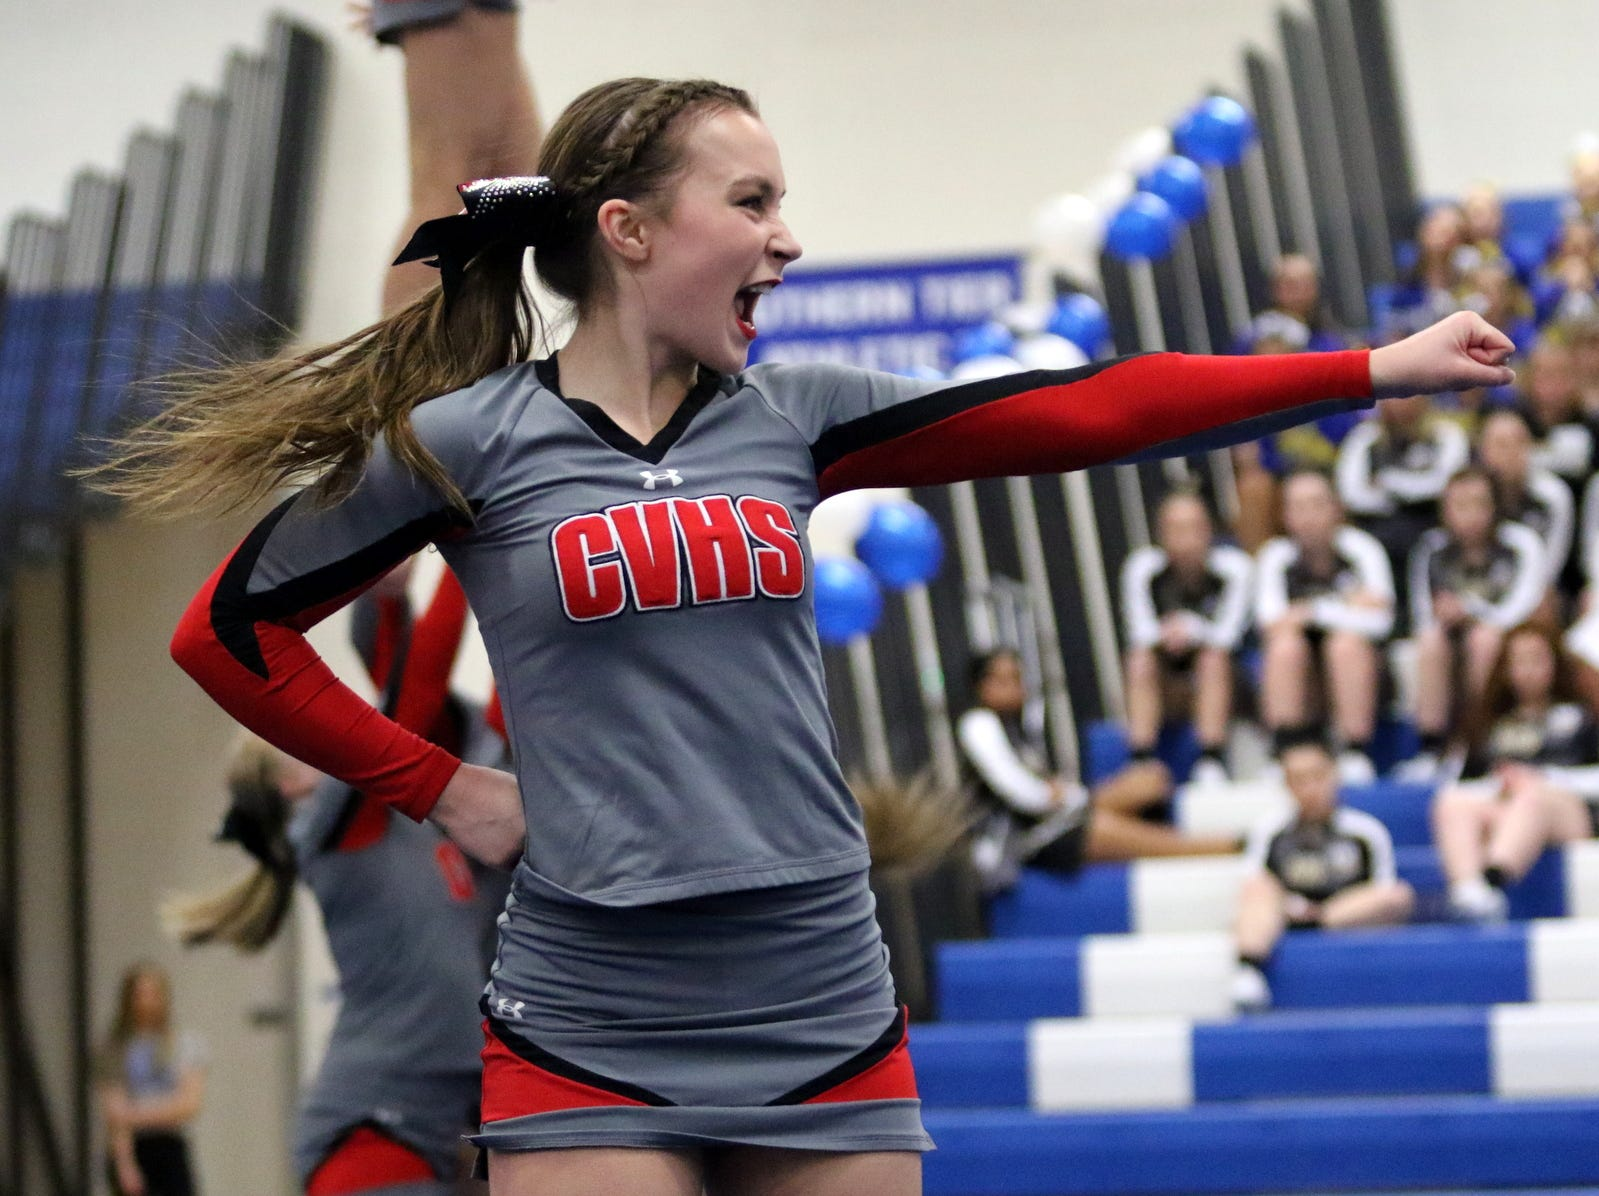 Chenango Valley varsity cheerleaders compete at the STAC Winter Cheer Championships on Feb. 16, 2019 at Horseheads Middle School.